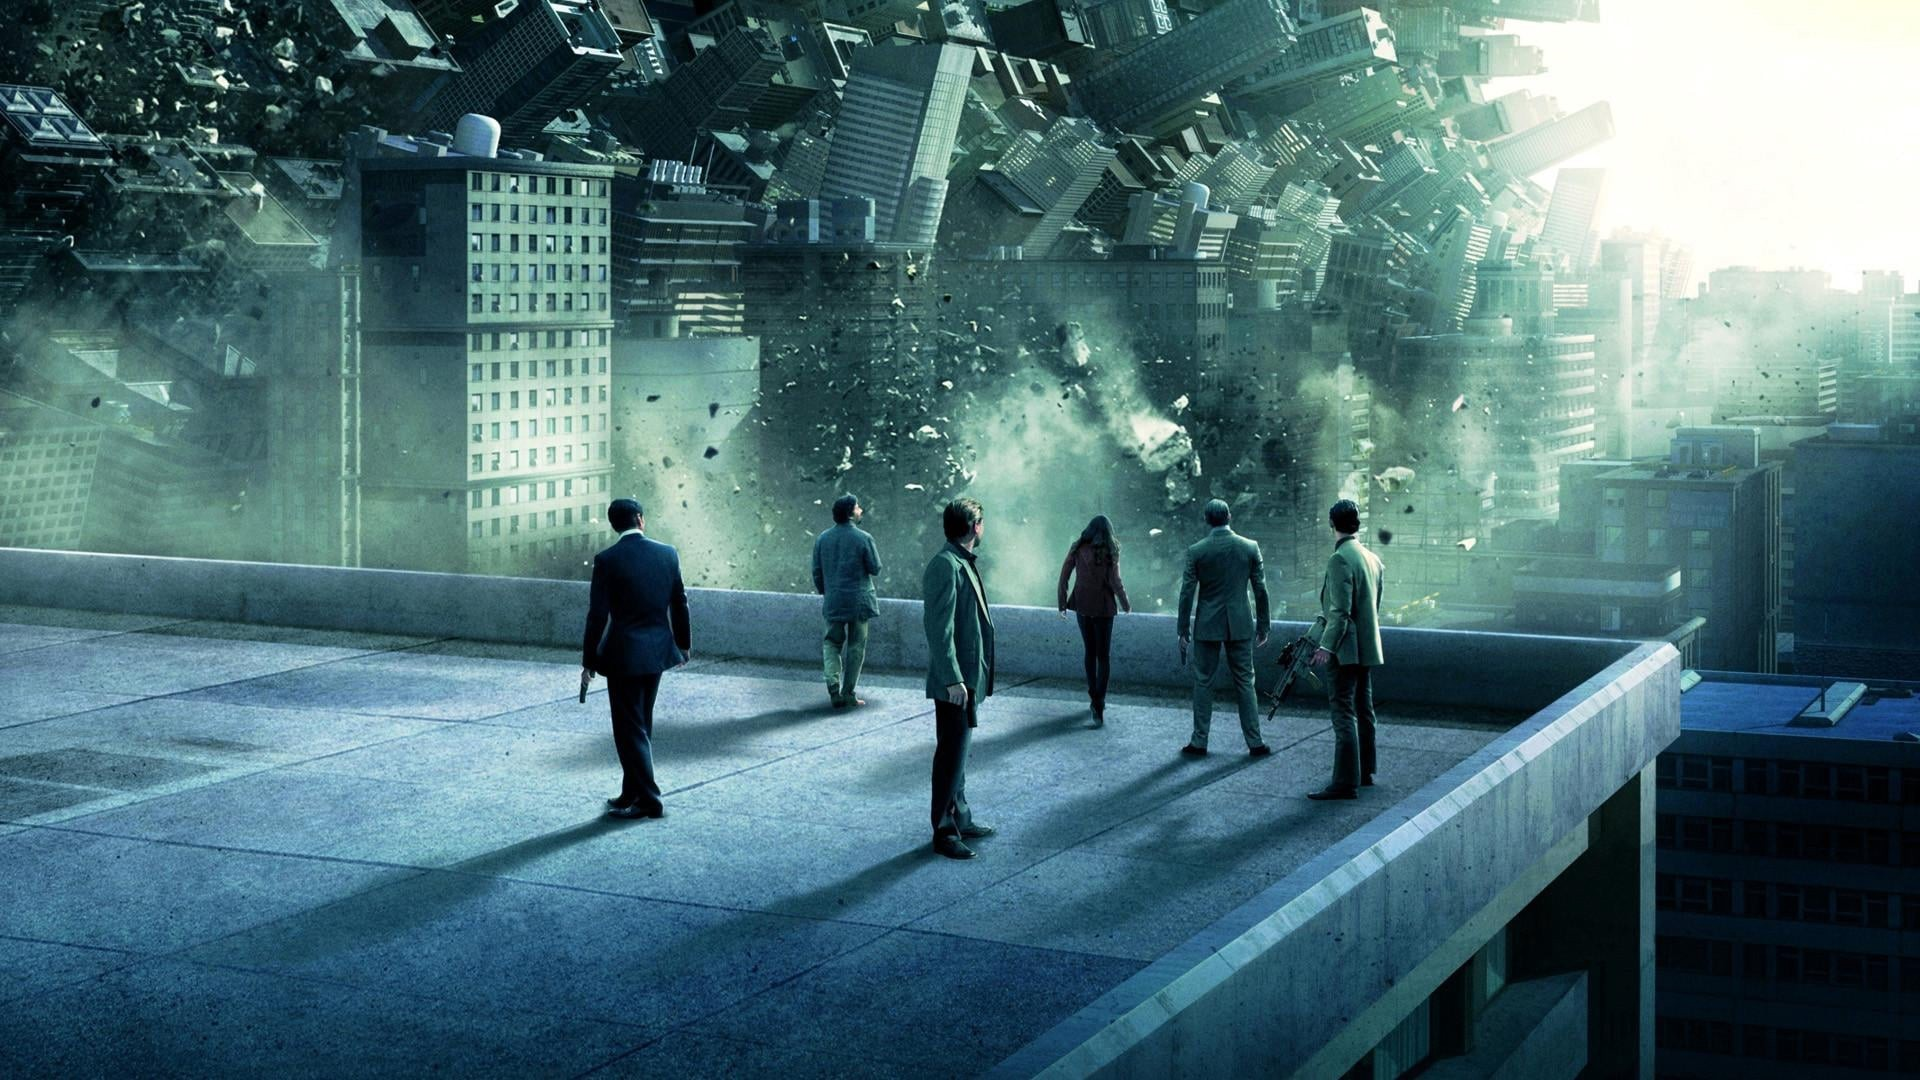 inception watch full movie online free hd